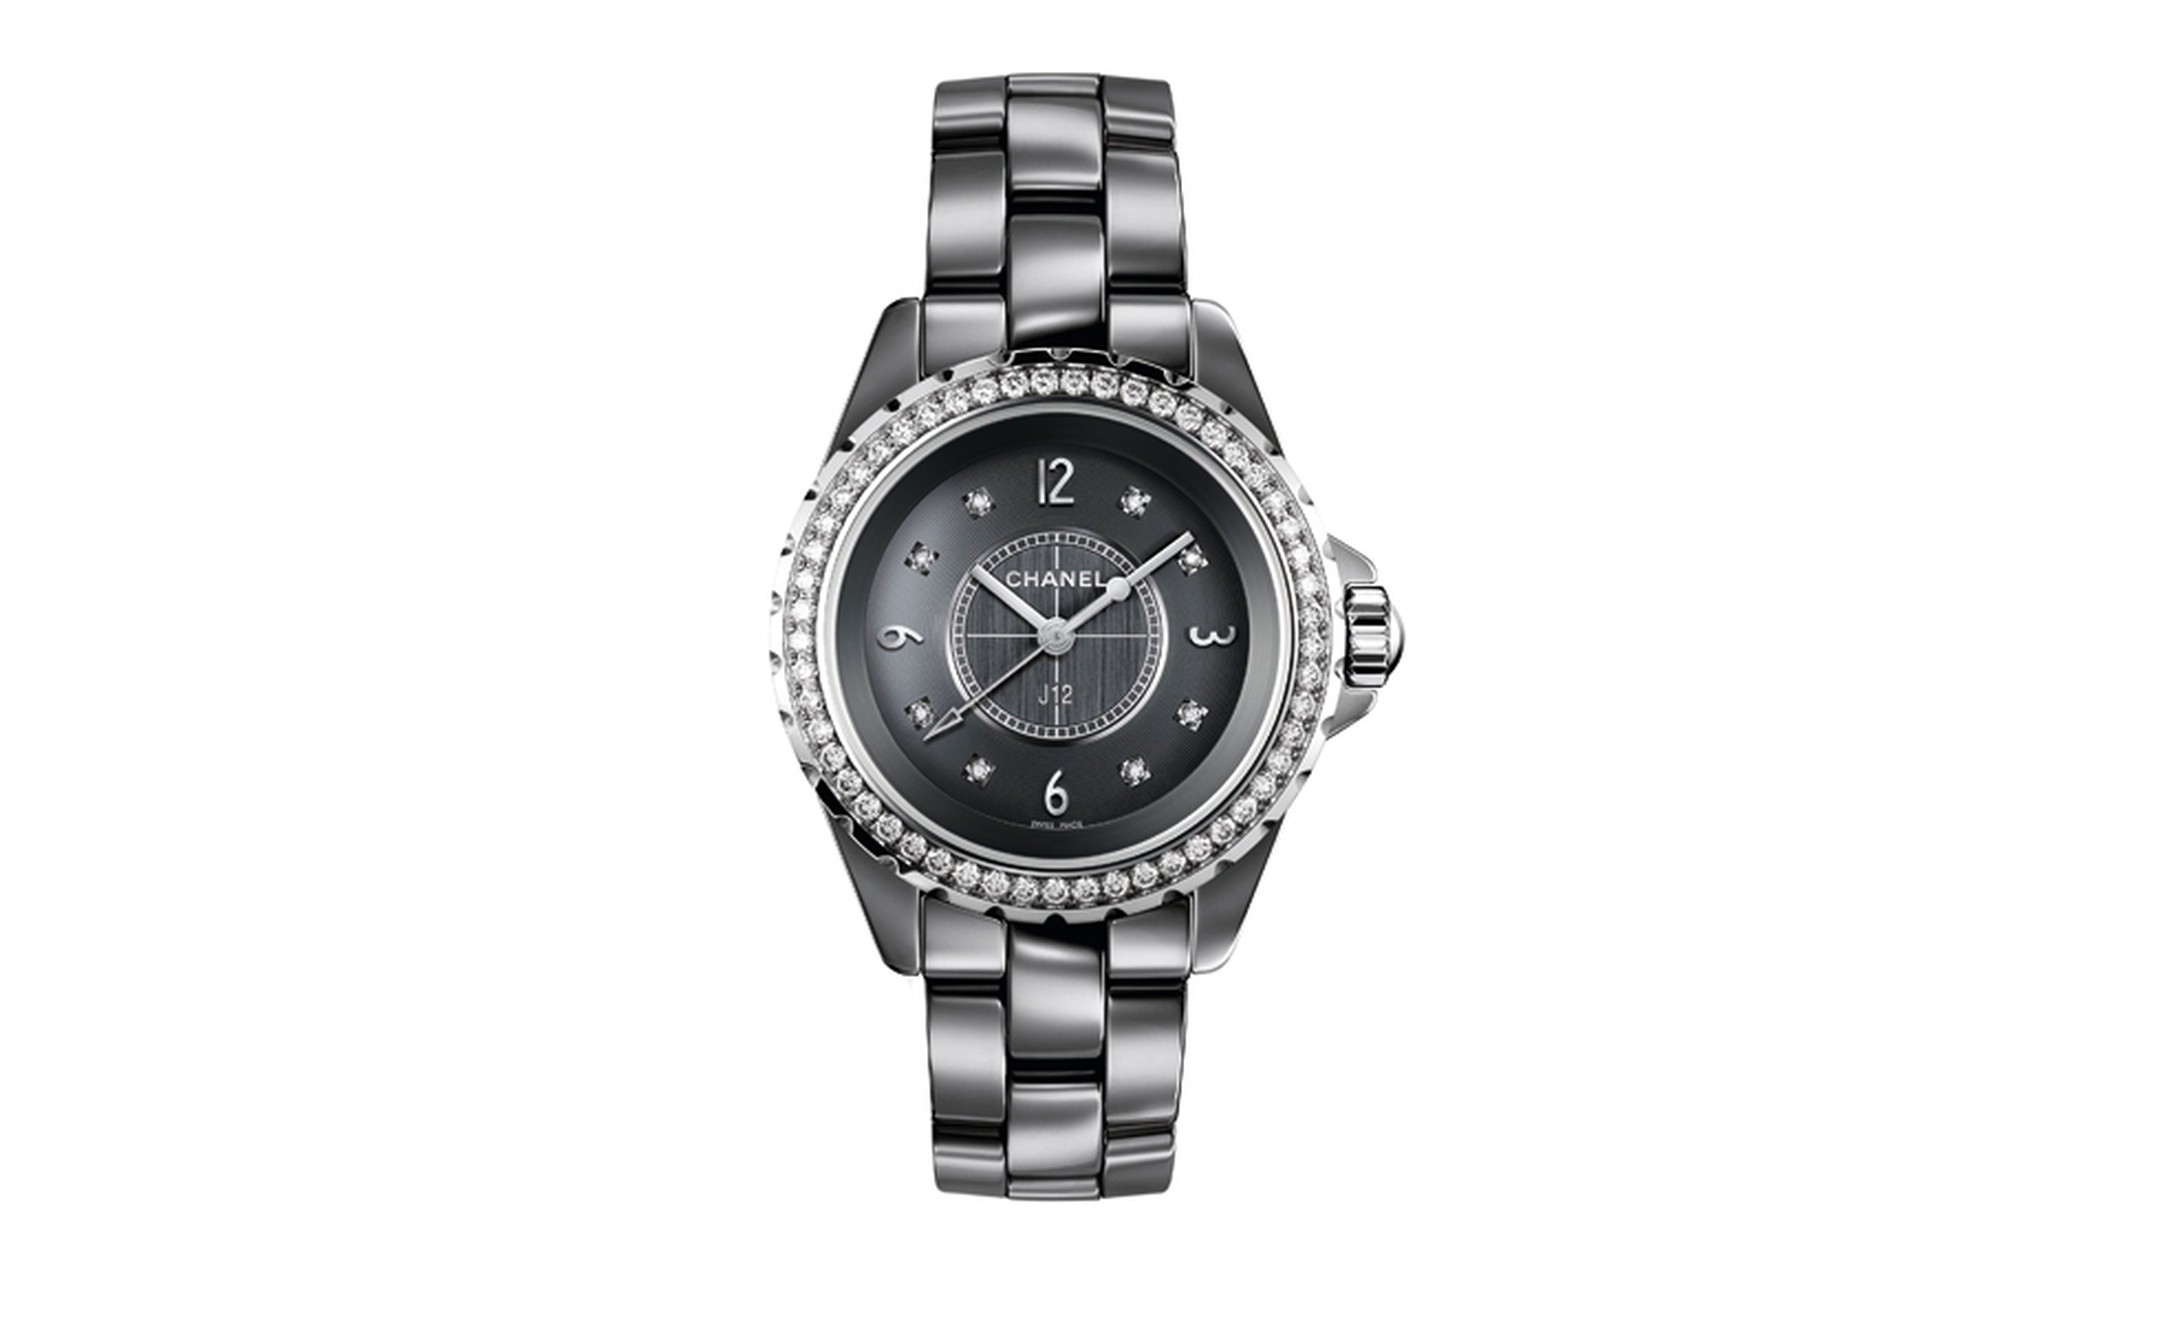 CHANEL, J12 Chromatic 33mm watch in white gold bezel, crown and hands. Set with Diamonds. Self winding mechanical movement. 42 hour power reserve. Water resistant 50 metres